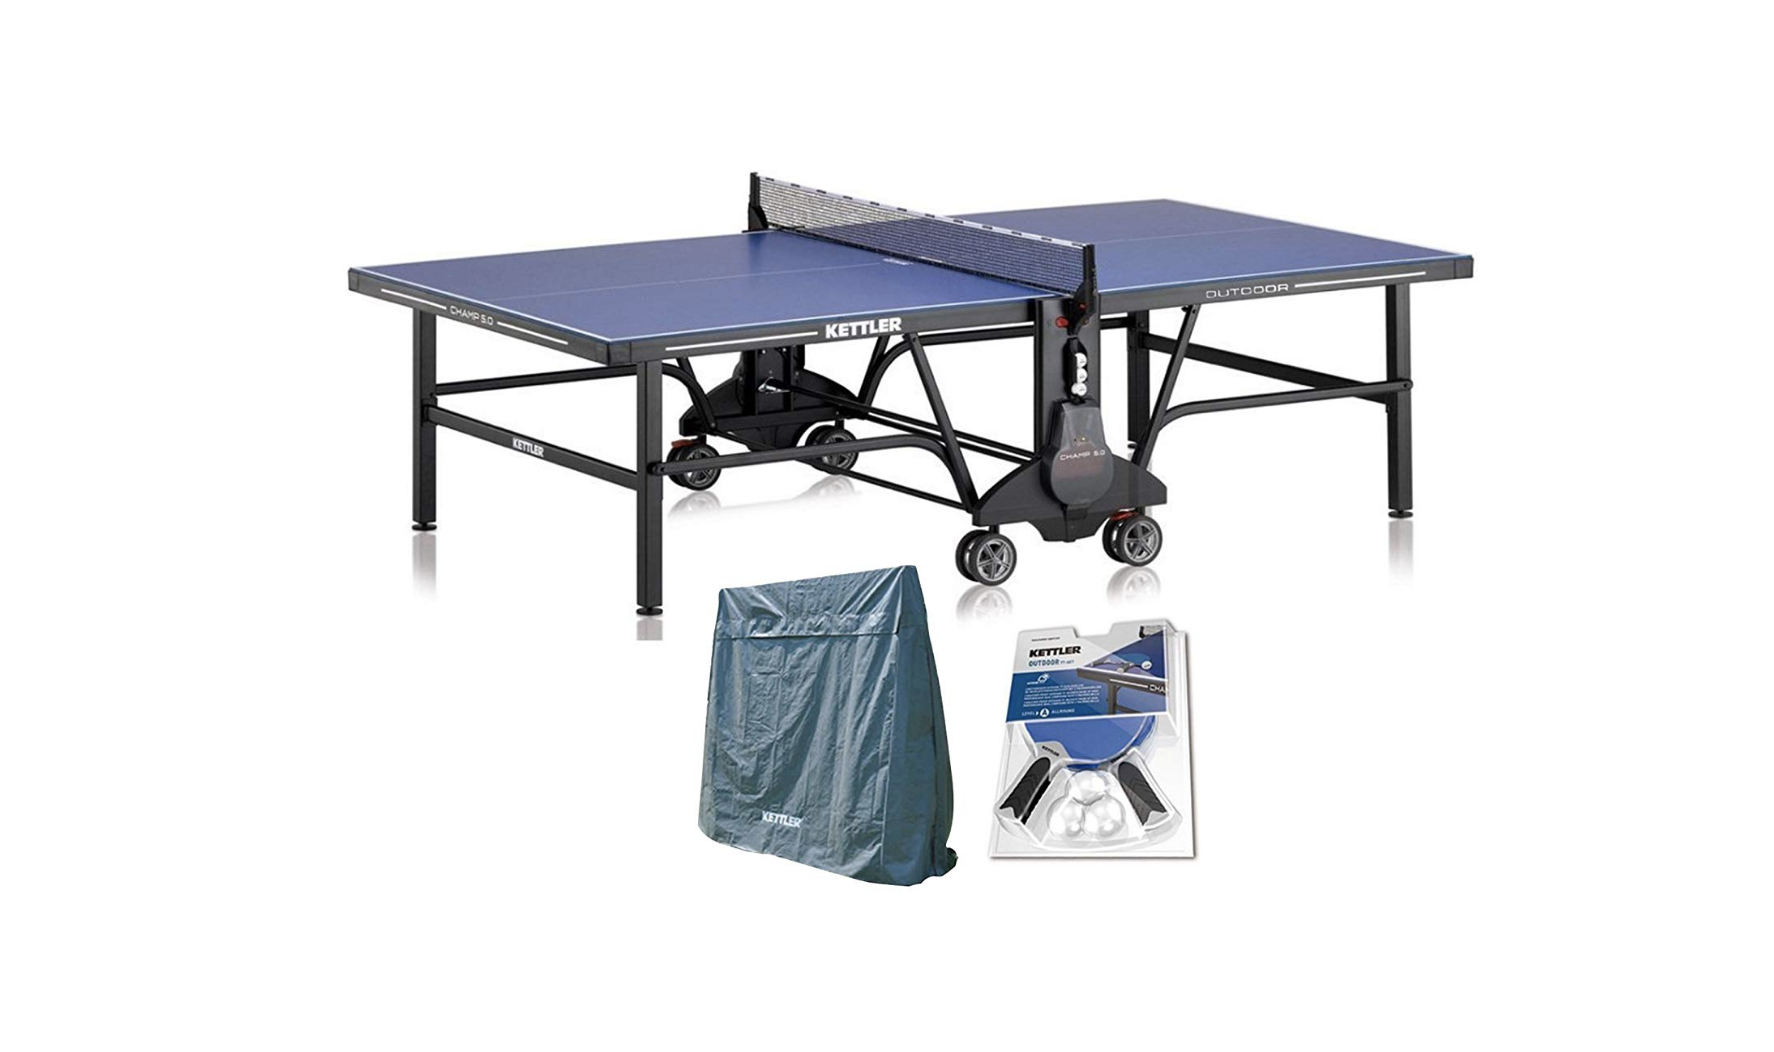 Top 10 Best Table Tennis Tables of 2020 Review